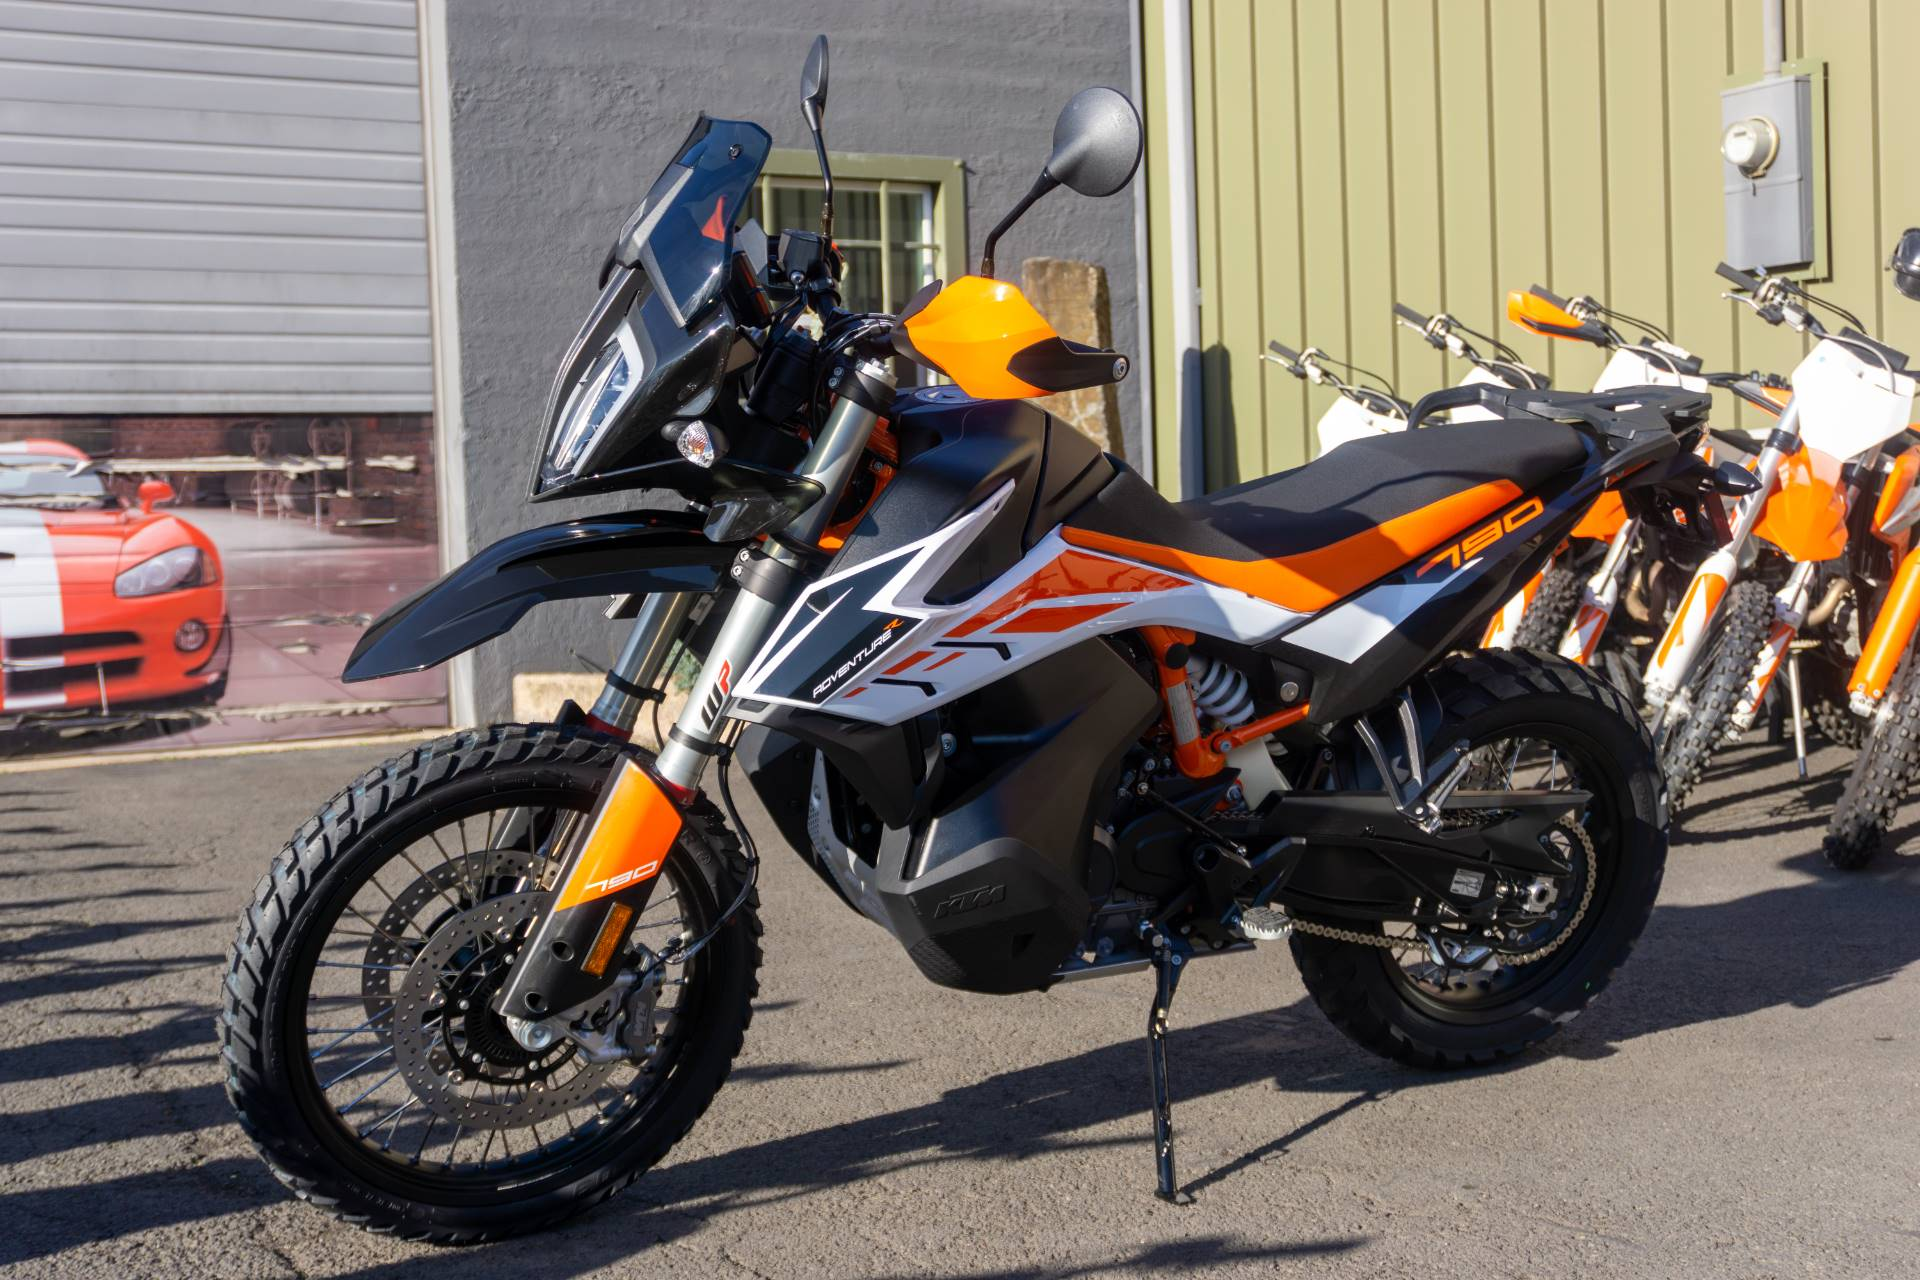 2020 KTM 790 Adventure R in Gresham, Oregon - Photo 1